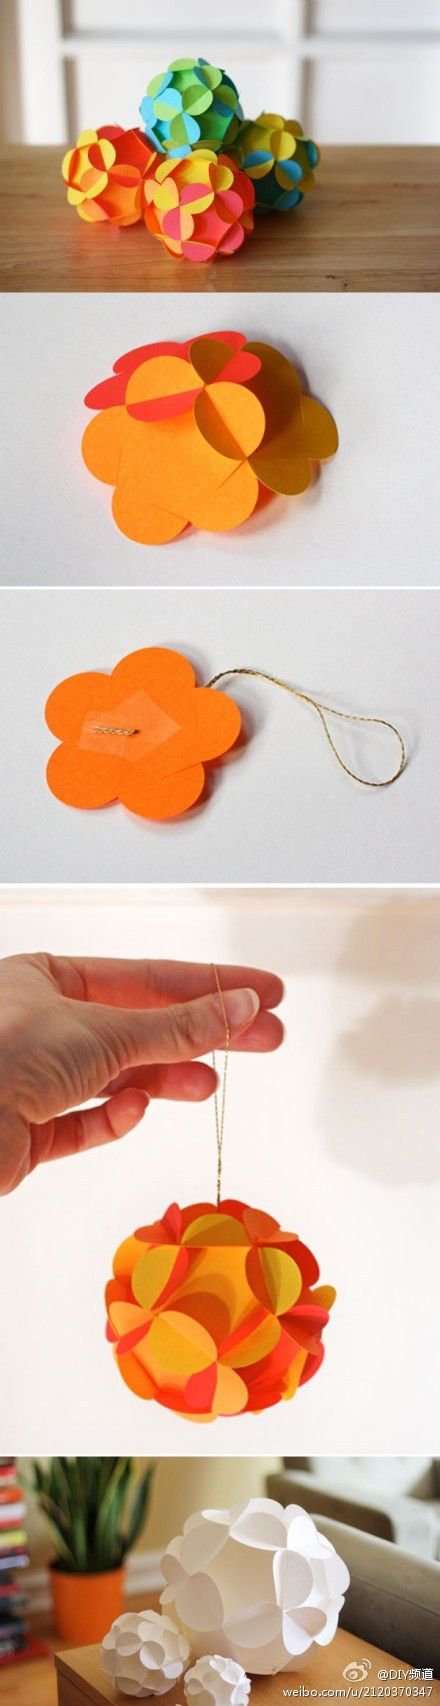 3-D paper ball ornaments with instructions and printable templates for download, by How About Orange: Made from 12 slotted flower shapes that fit together to form a sphere. No adhesive needed; the only ingredient is paper. [By Jessica Jones -please keep craft  work credit and original link if reusing or repinning. Thanks!]